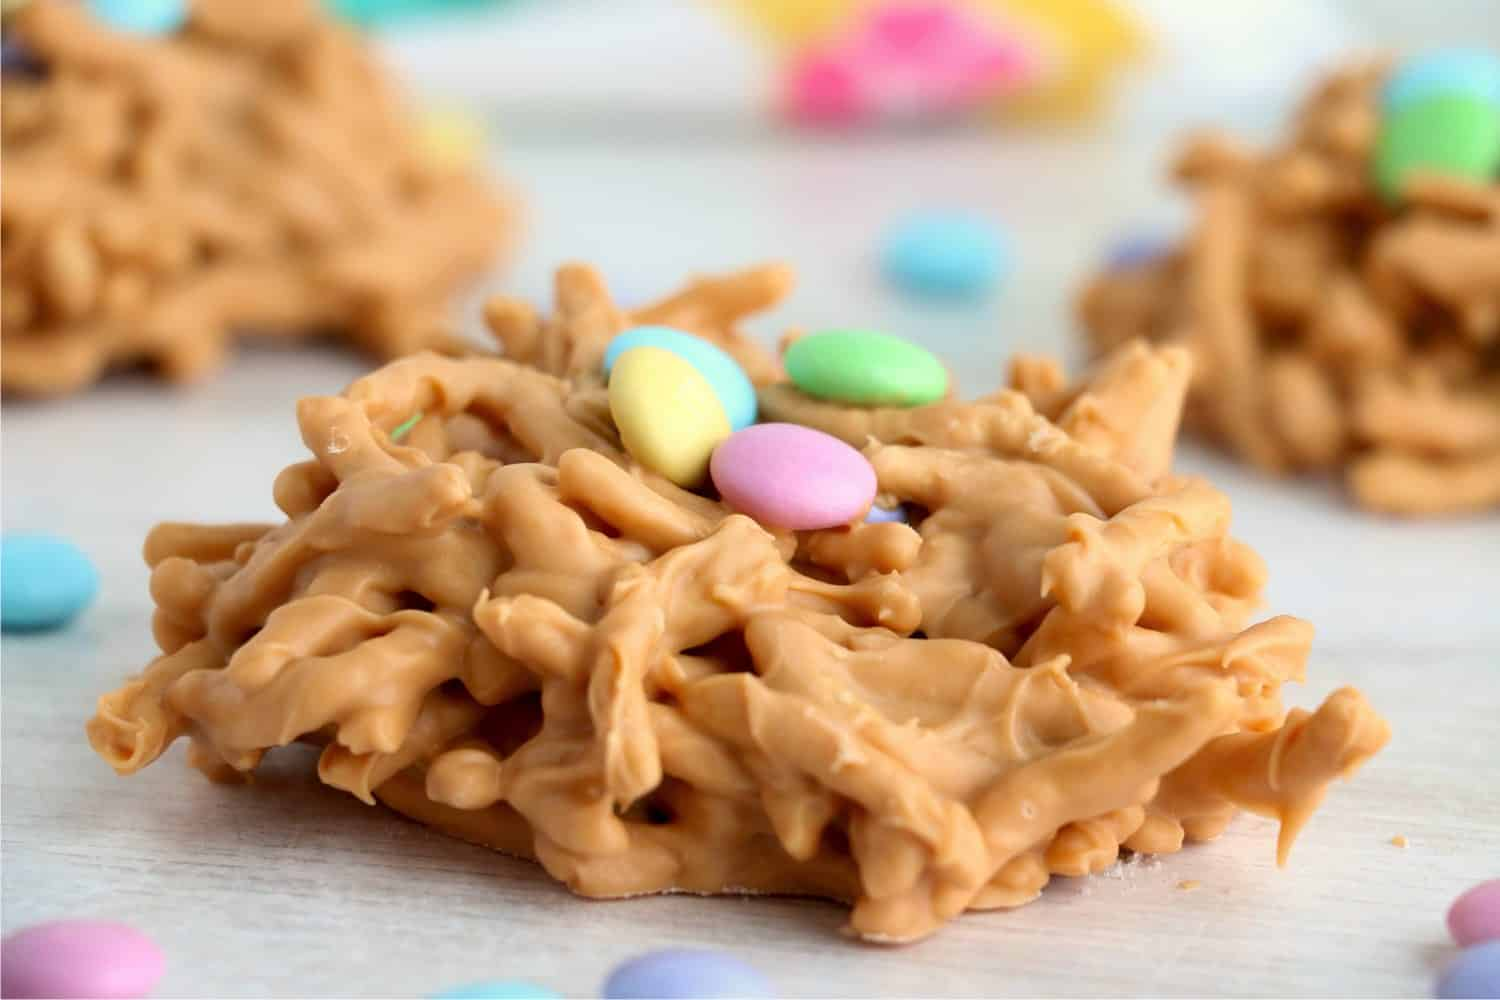 Butterscotch Bird Nests are a cute, sweet spring treat! Crunchy chow mein noodles covered in delicious butterscotch, topped off with M&Ms.